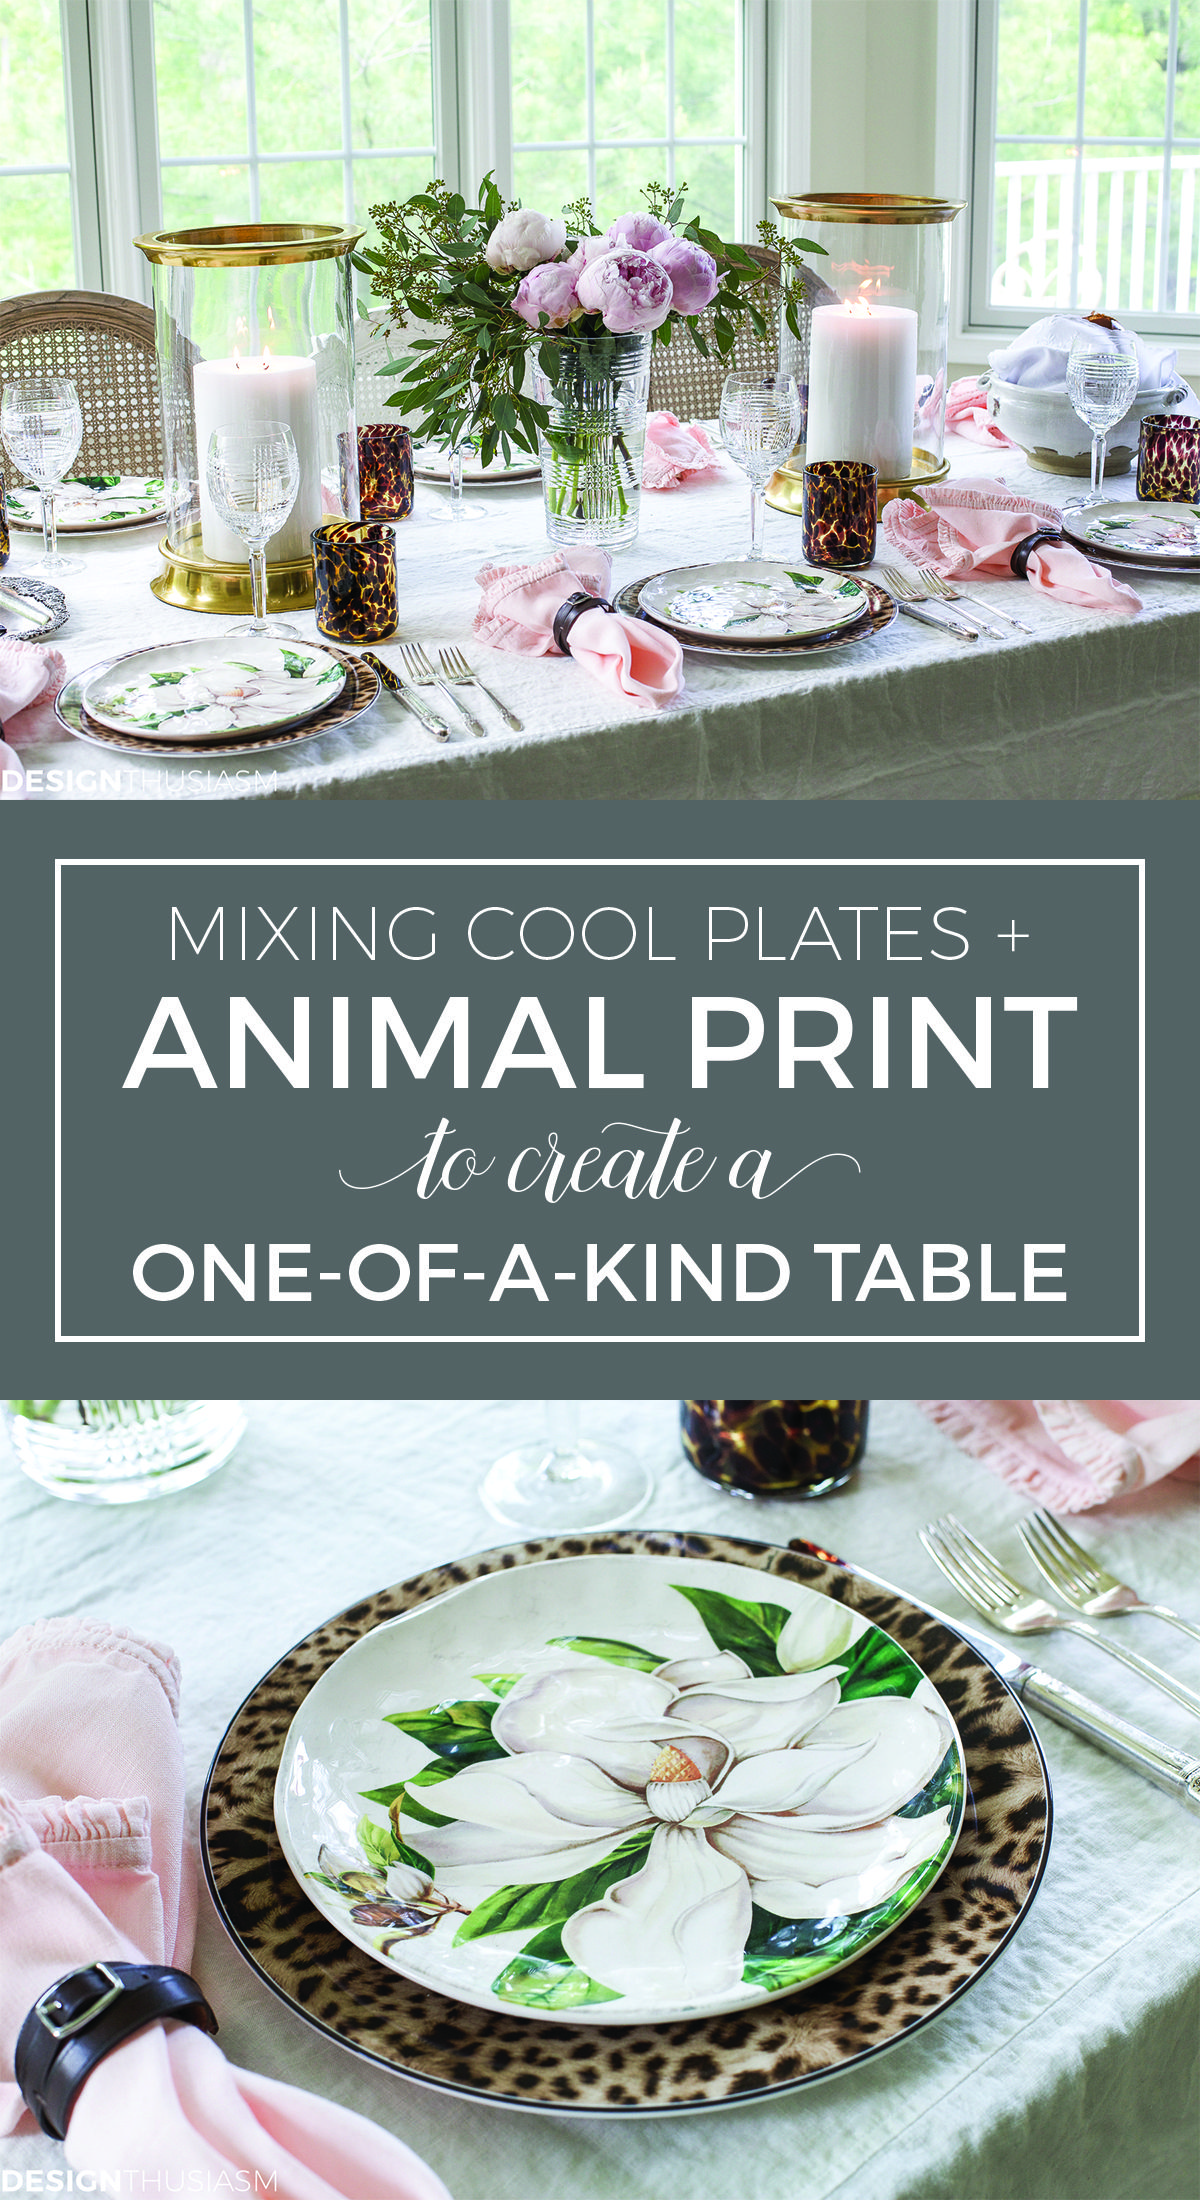 Cool Plates Mixing Animal Print And Soft Floral In A